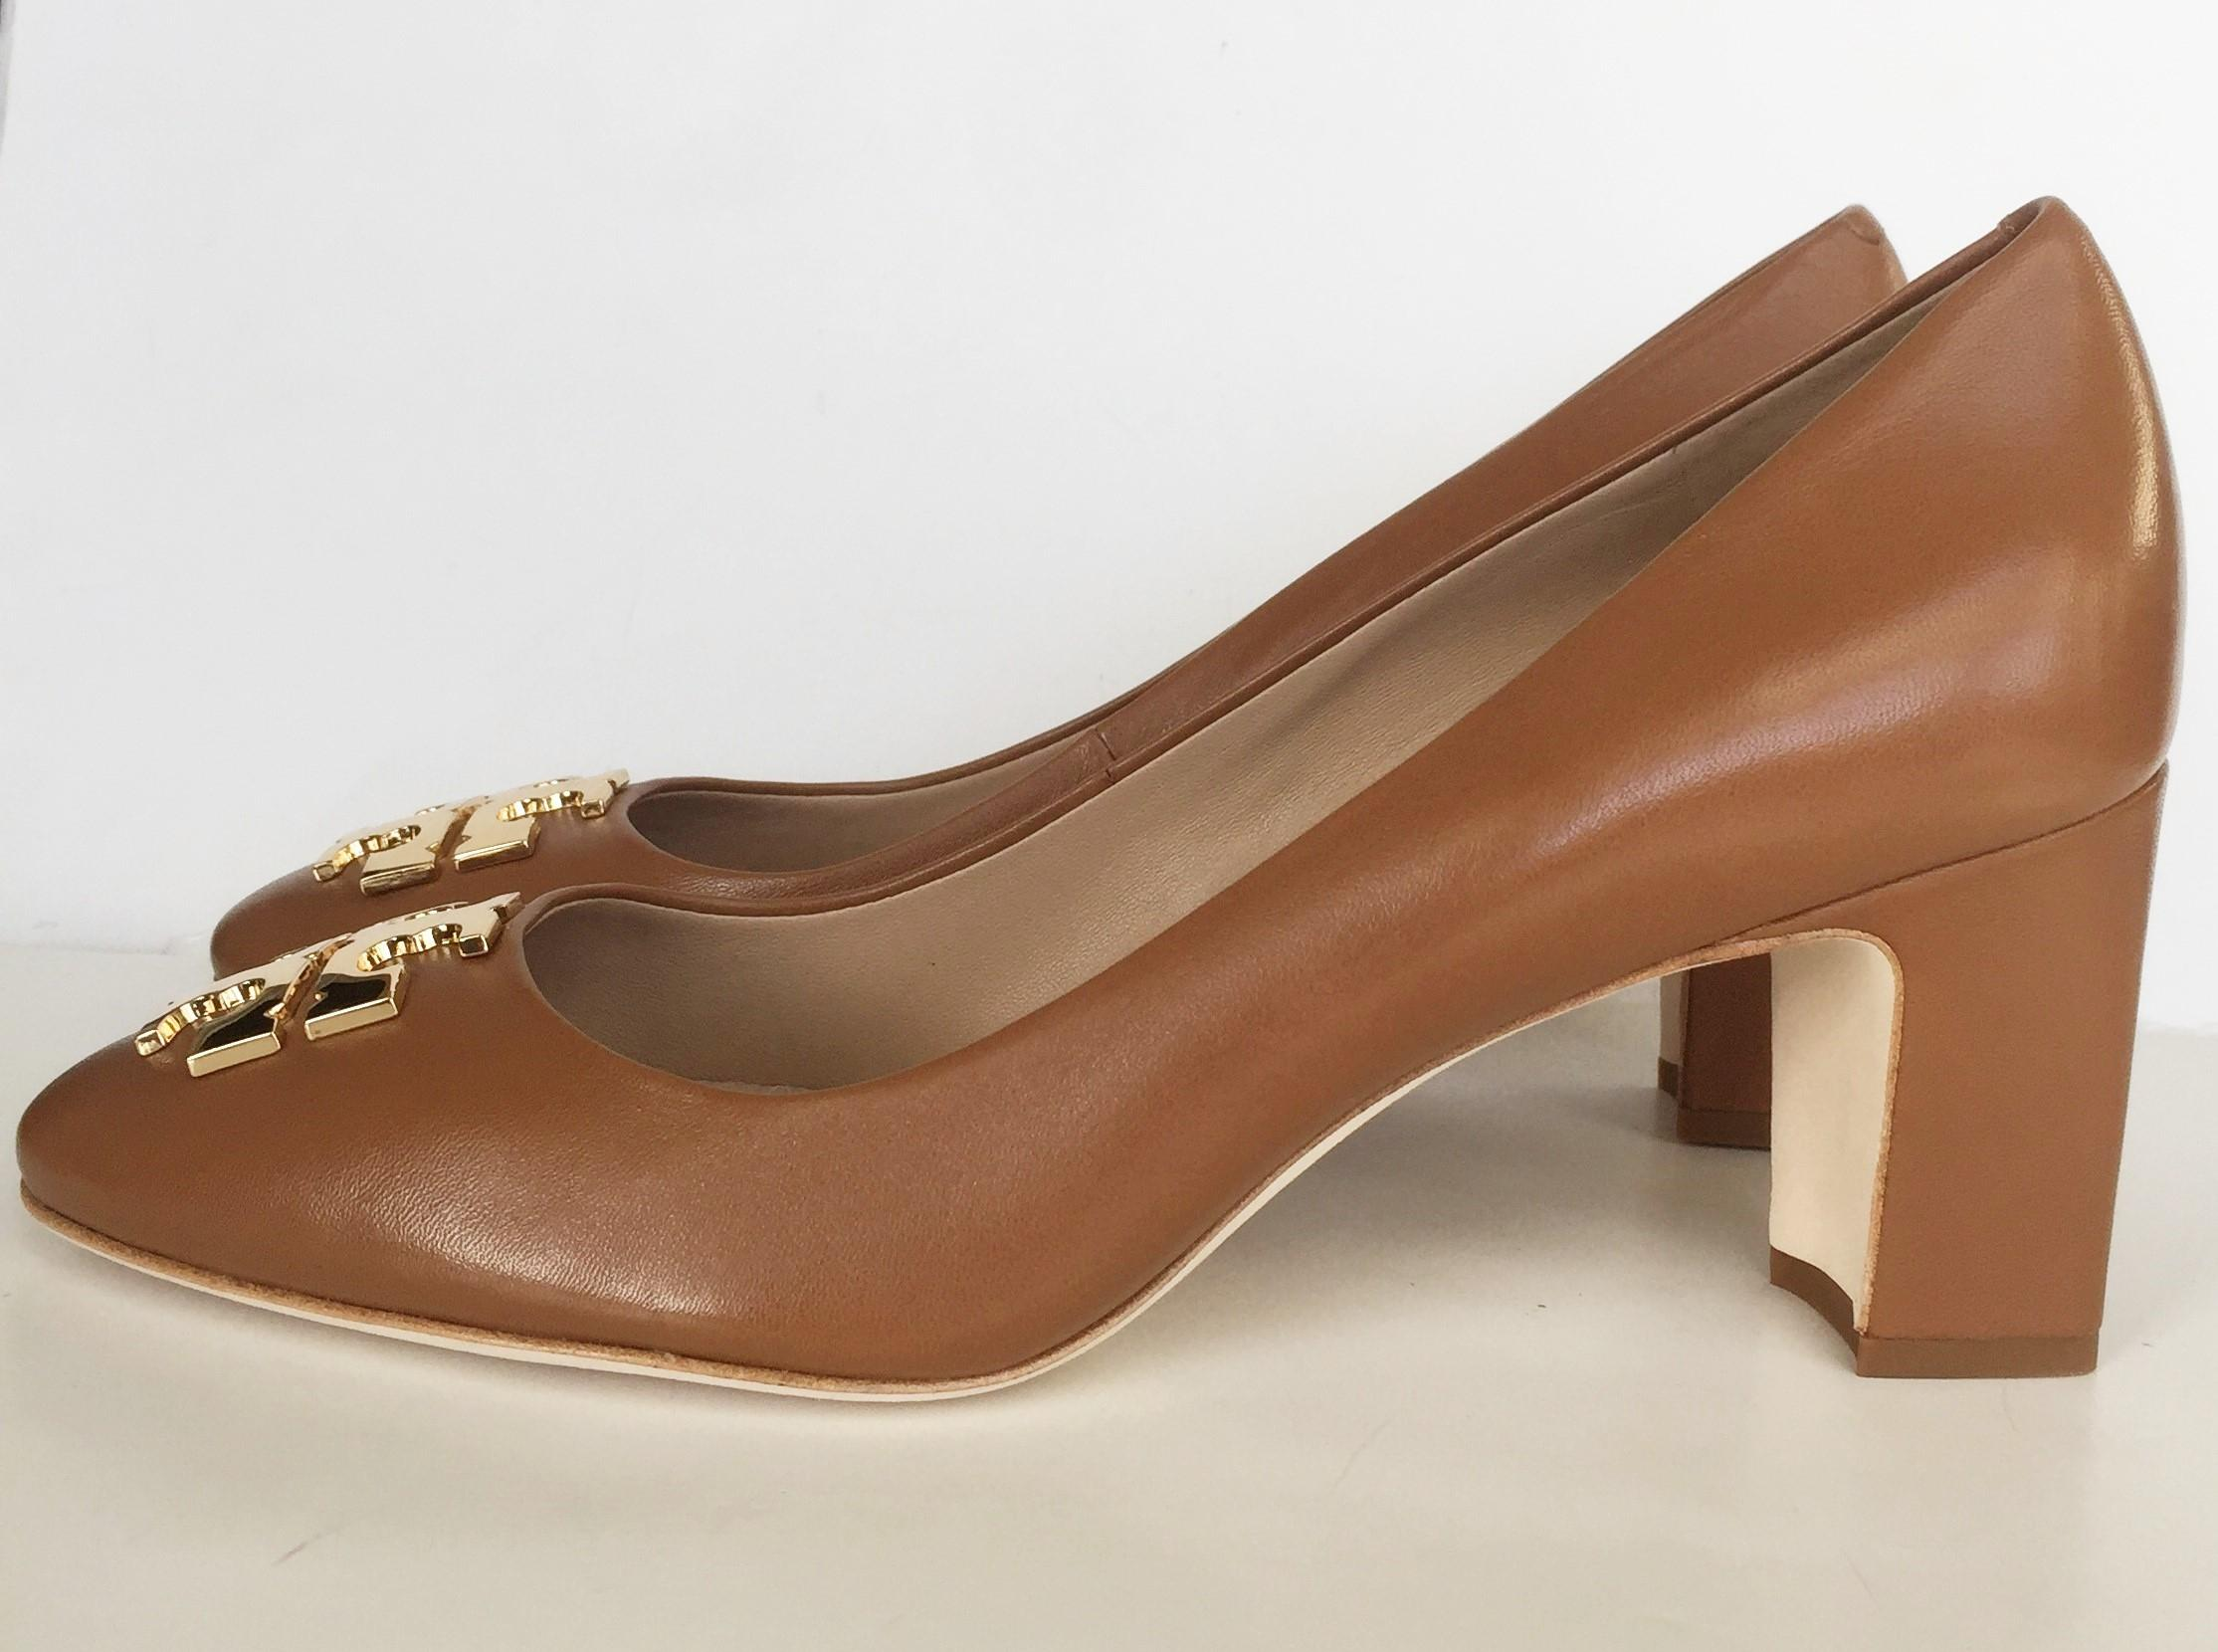 Tory Burch royal tan Pumps. 123456789101112